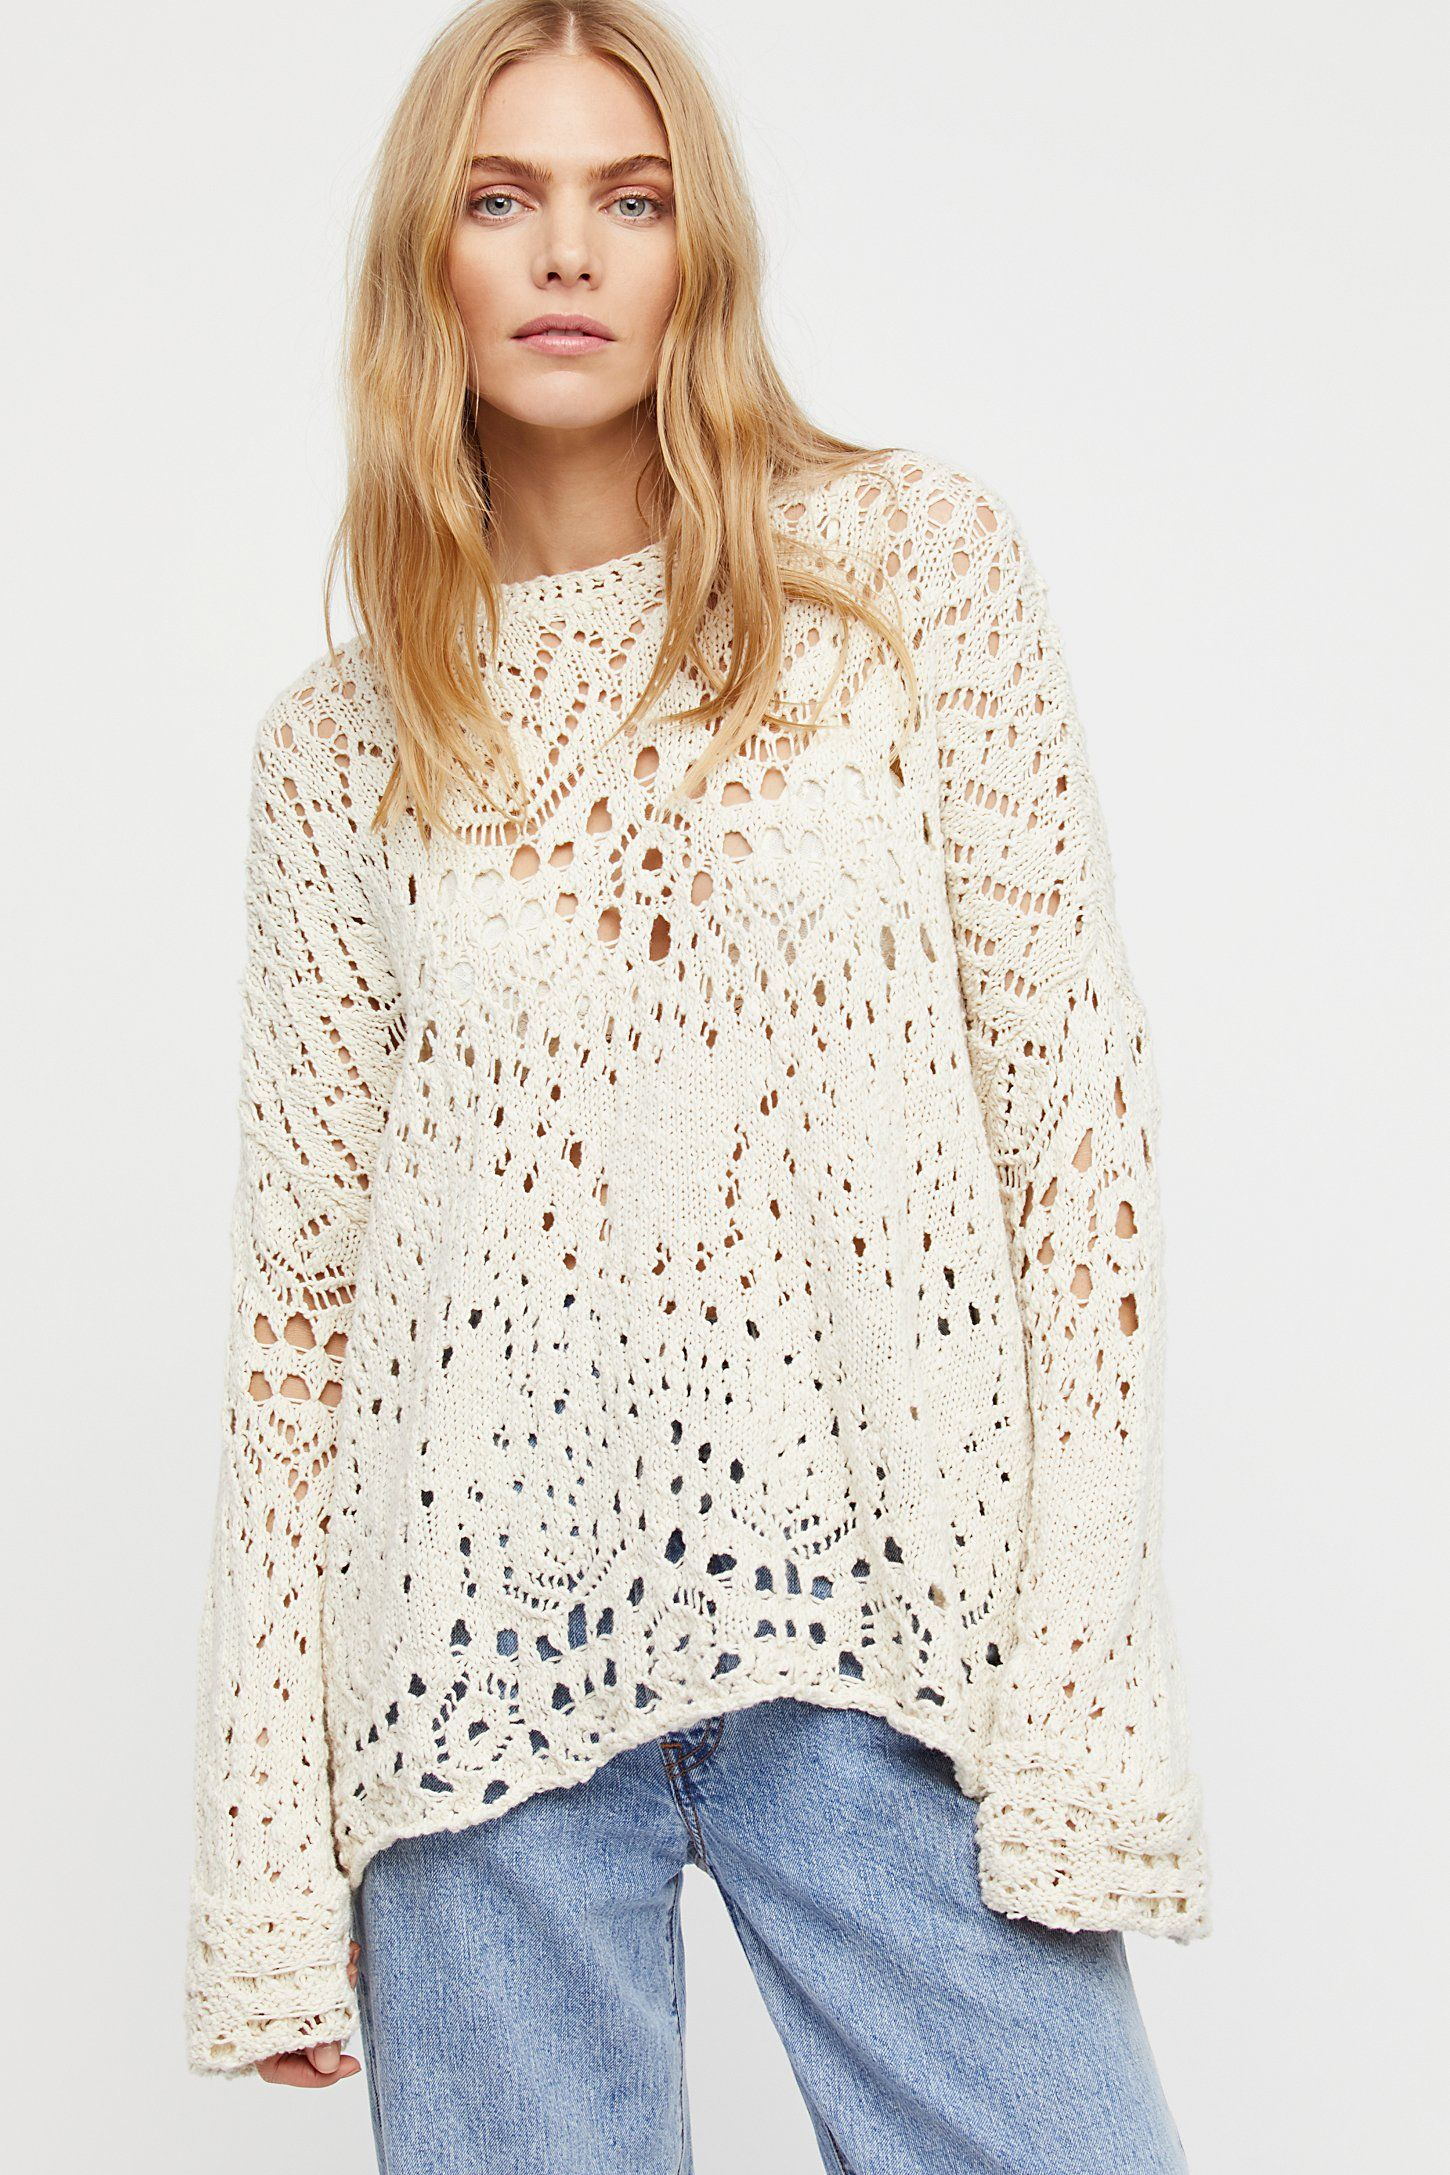 Traveling Lace Sweater   Pinterest